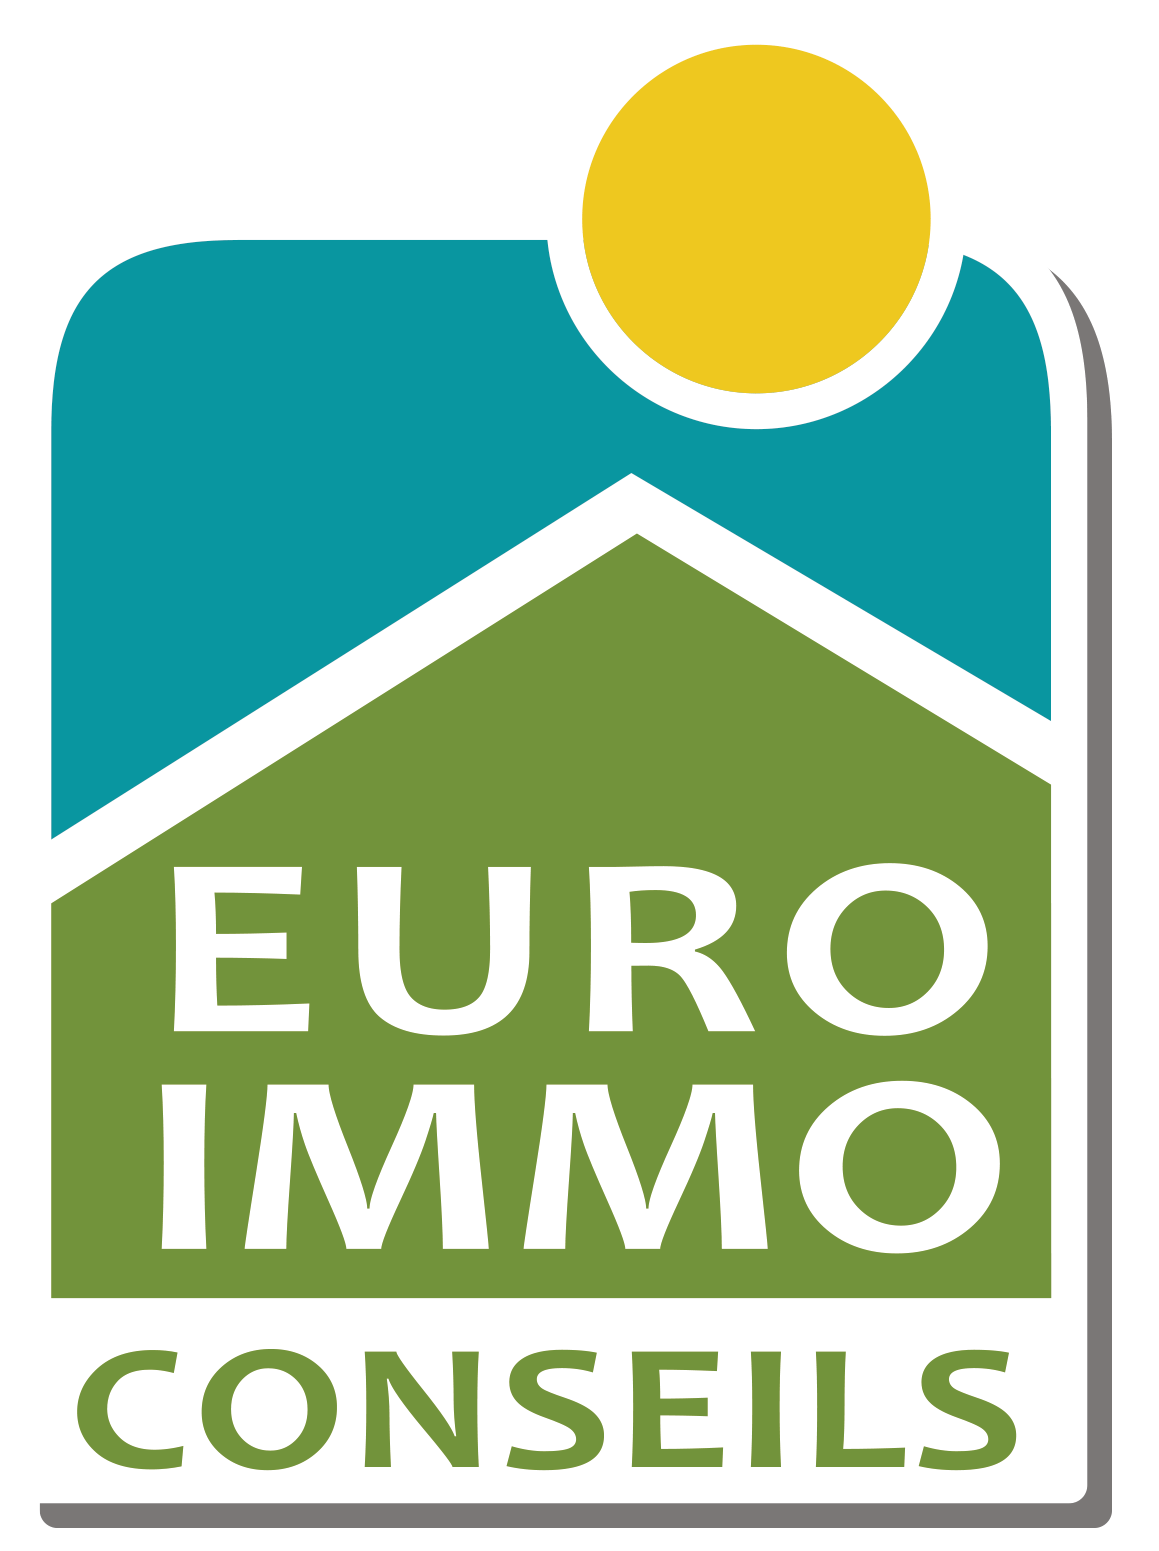 Euro immo conseils epinal epinal 88000 annonces for Conseil immo